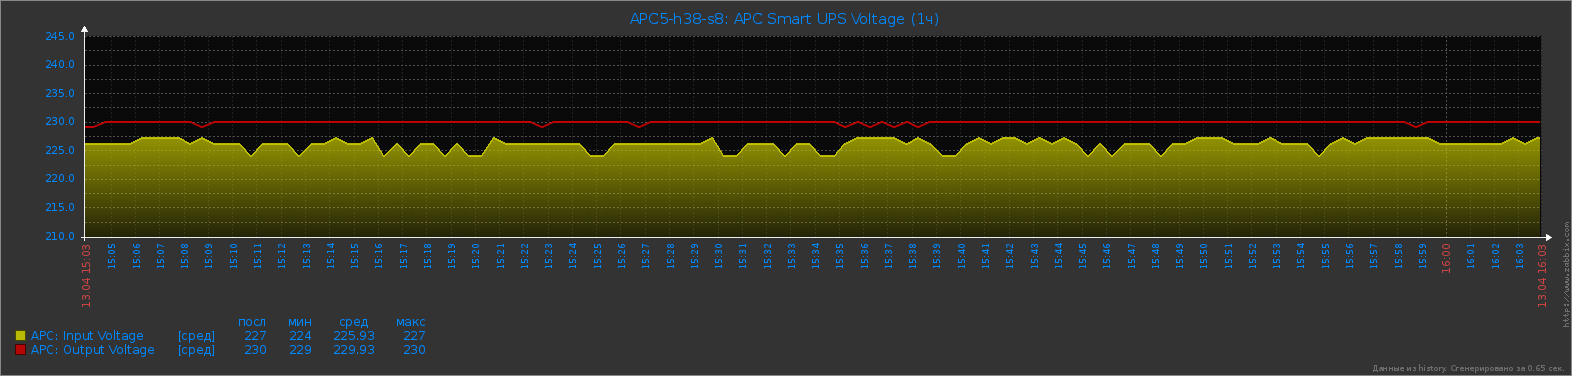 APC Smart UPS - Input Voltage